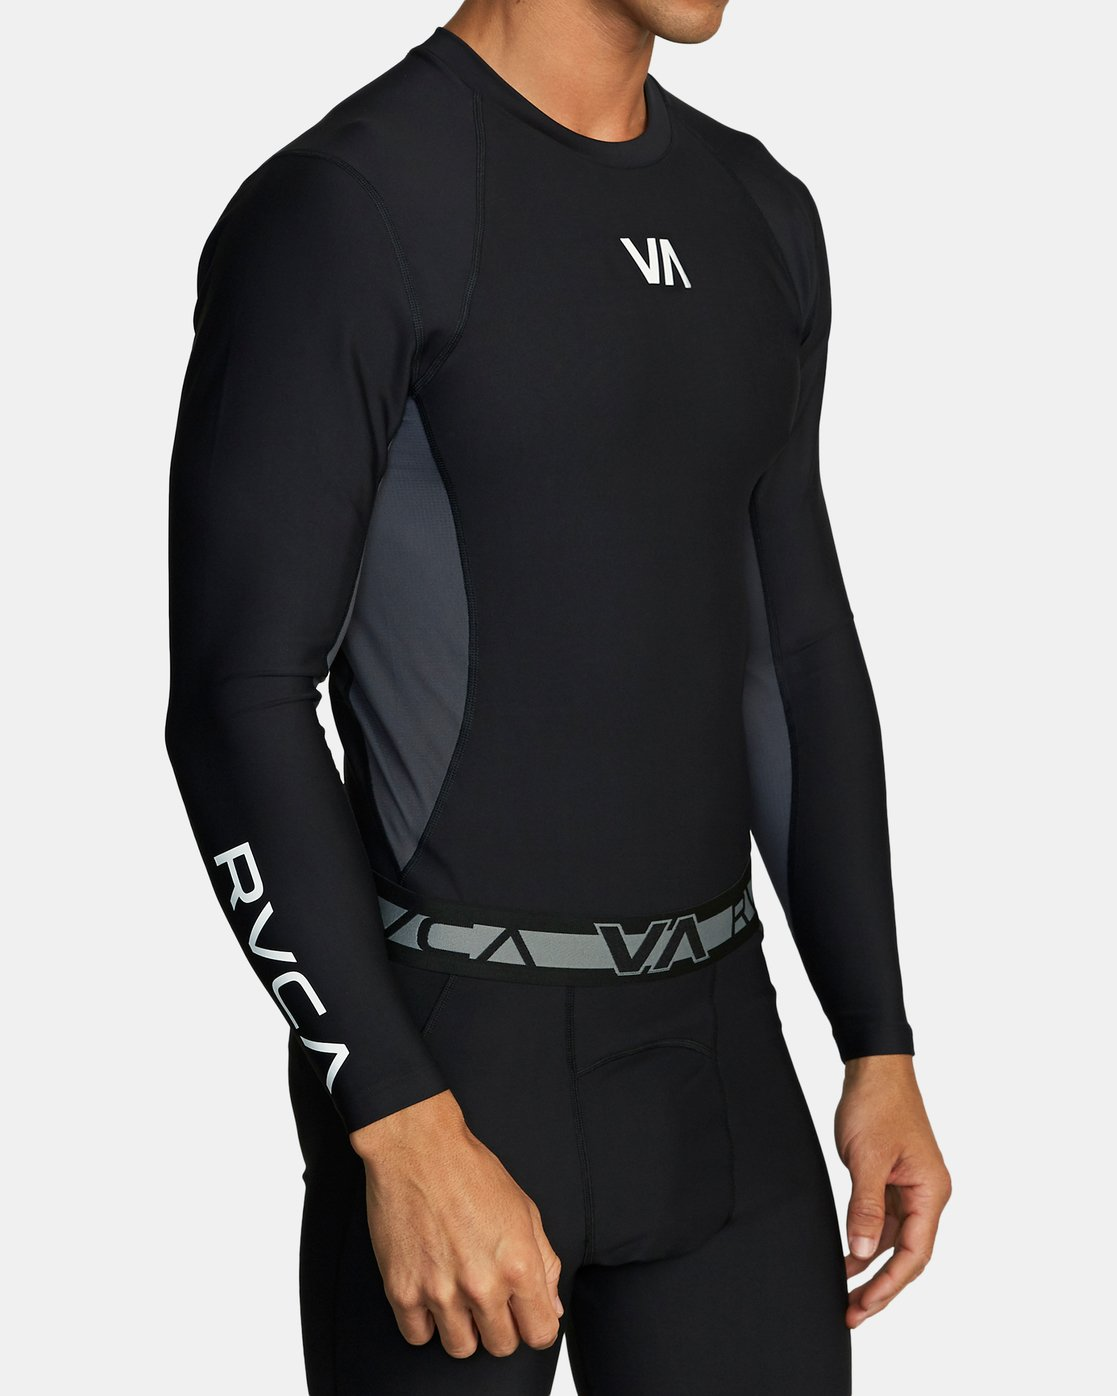 4 COMPRESSION LONG SLEEVE TOP Black VR011RCL RVCA